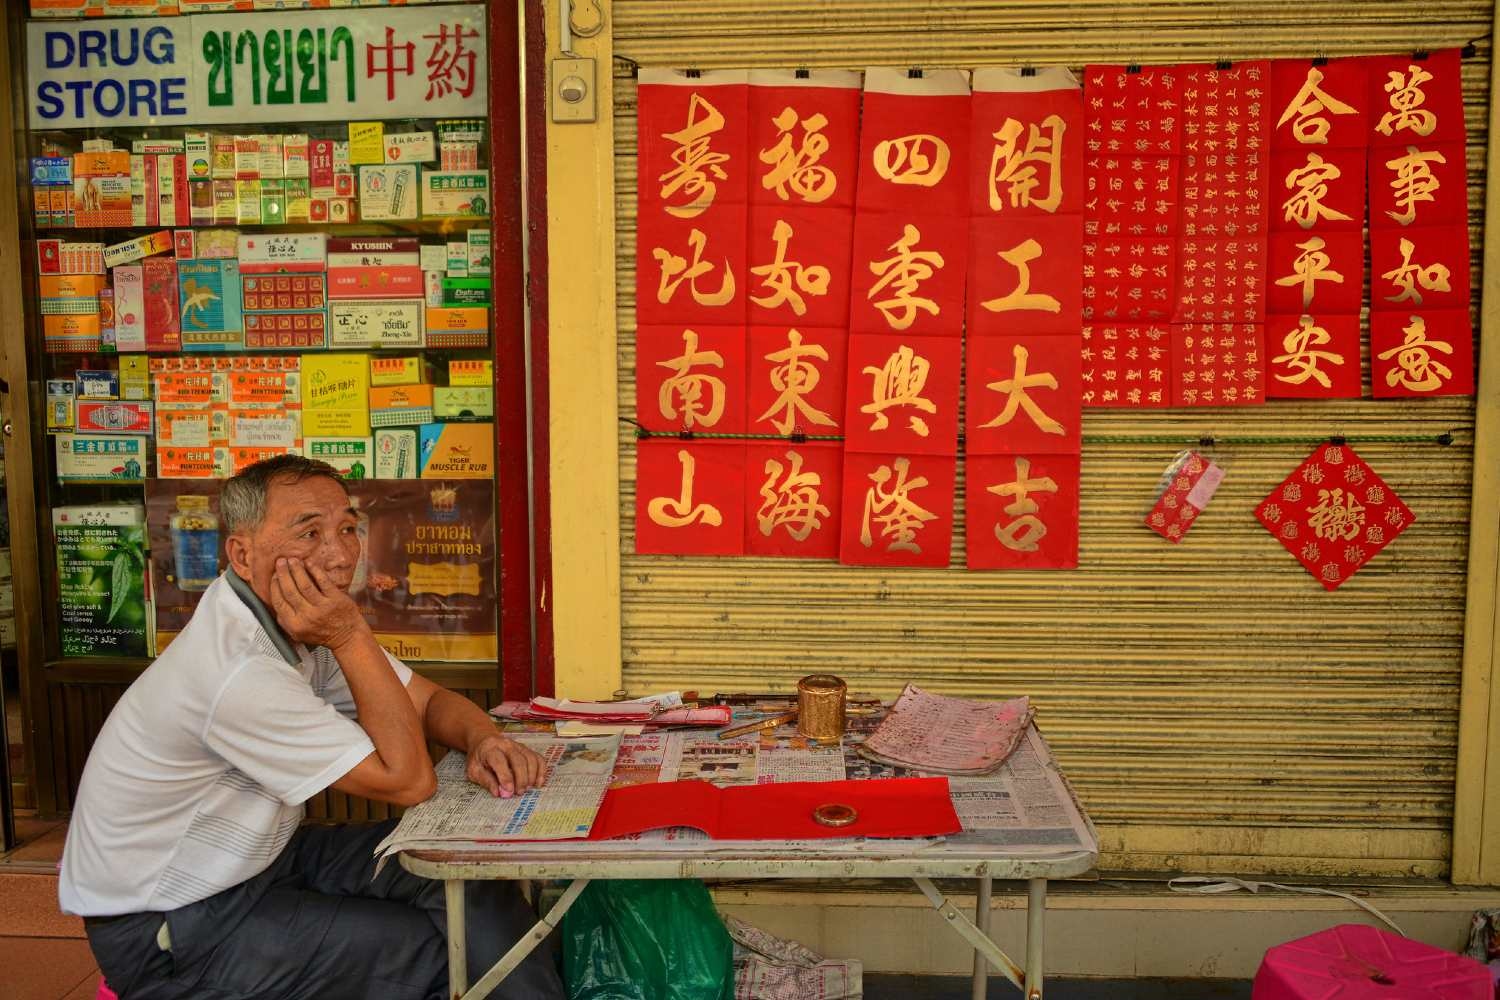 Chinese man sits at a table with a newspaper in front of a pharmacy in ChinaTown, Bangkok